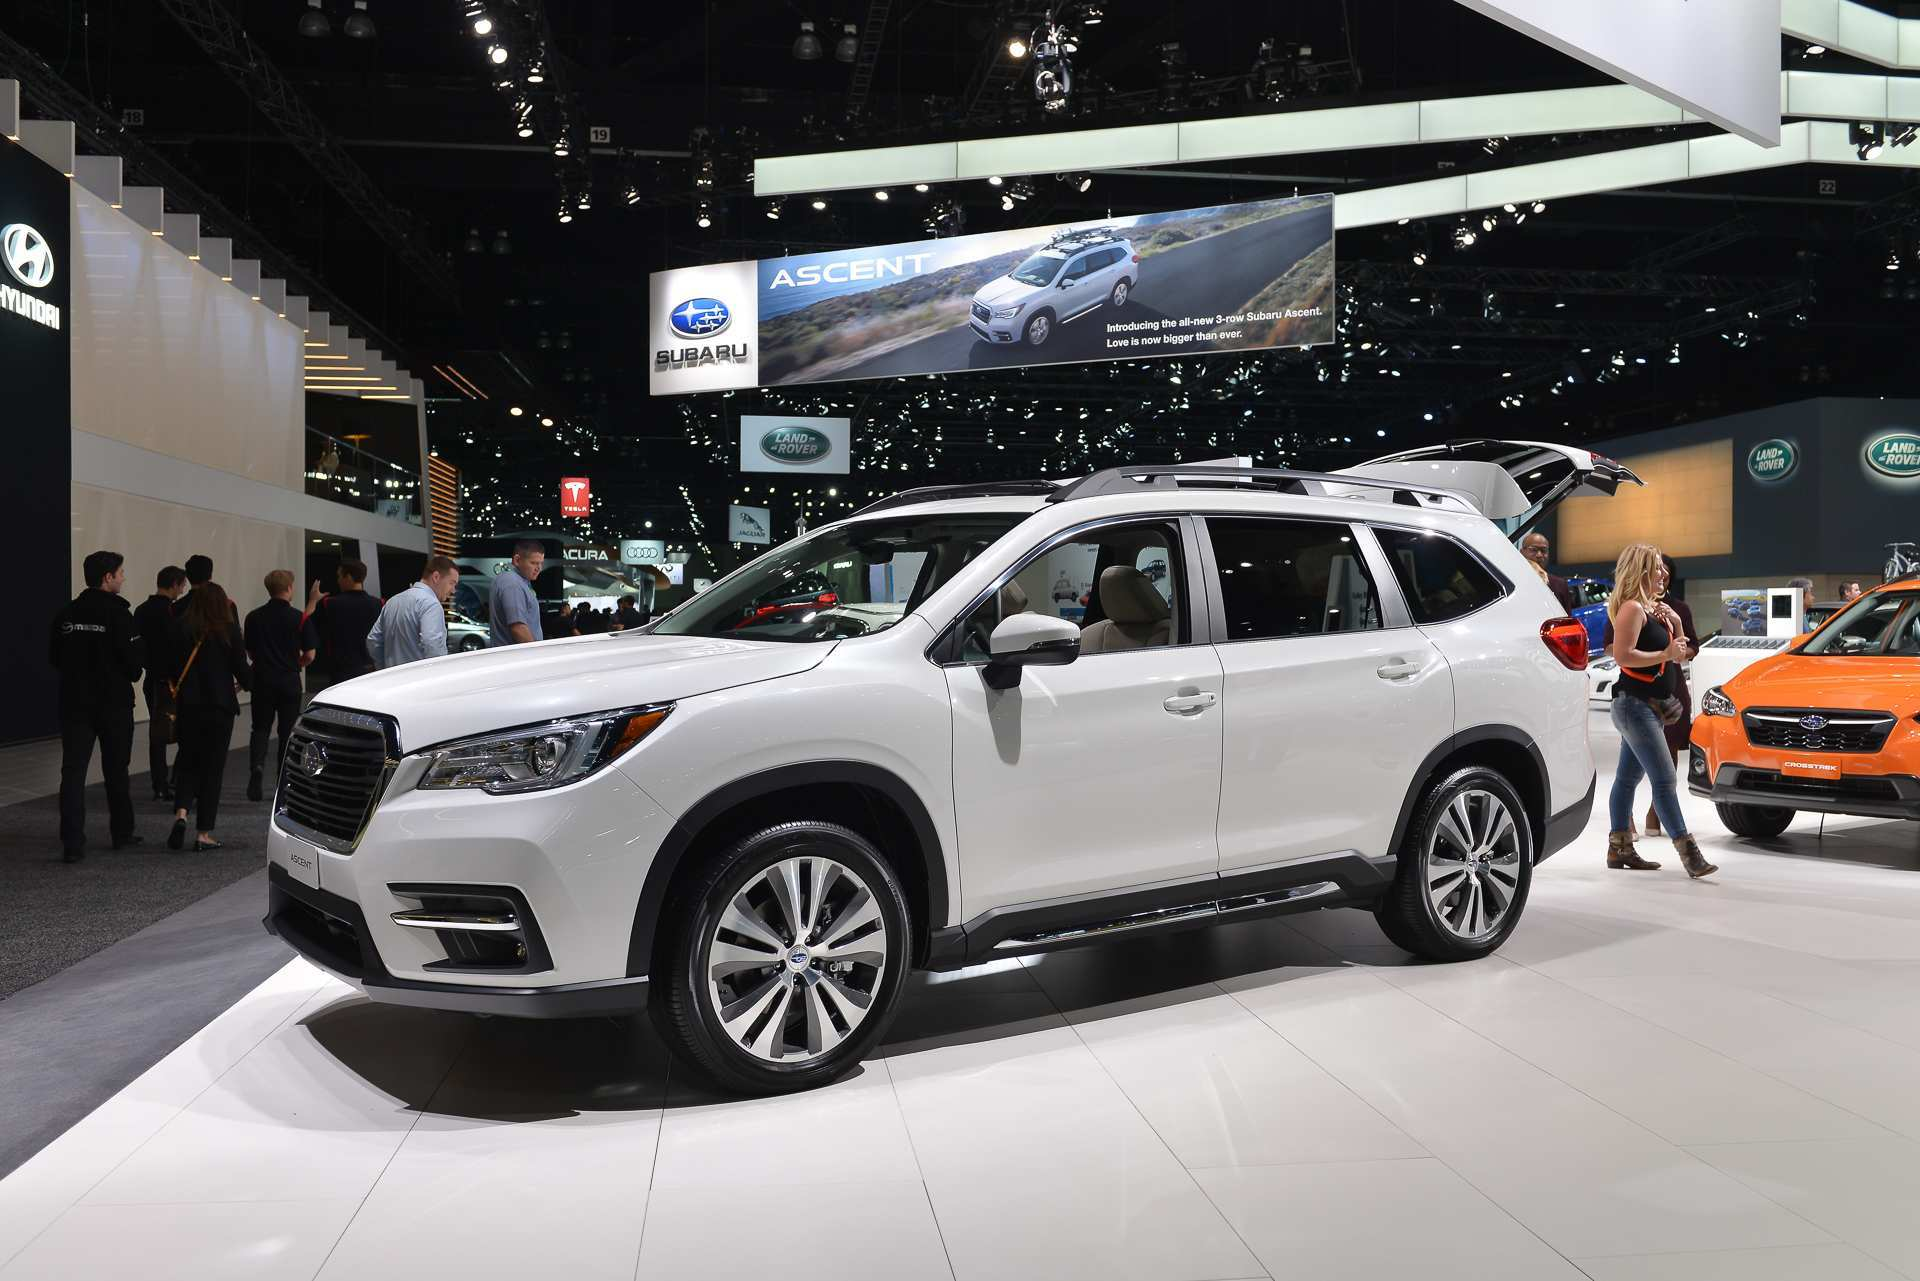 32 Concept of 2019 Subaru Ascent Debut New Review by 2019 Subaru Ascent Debut